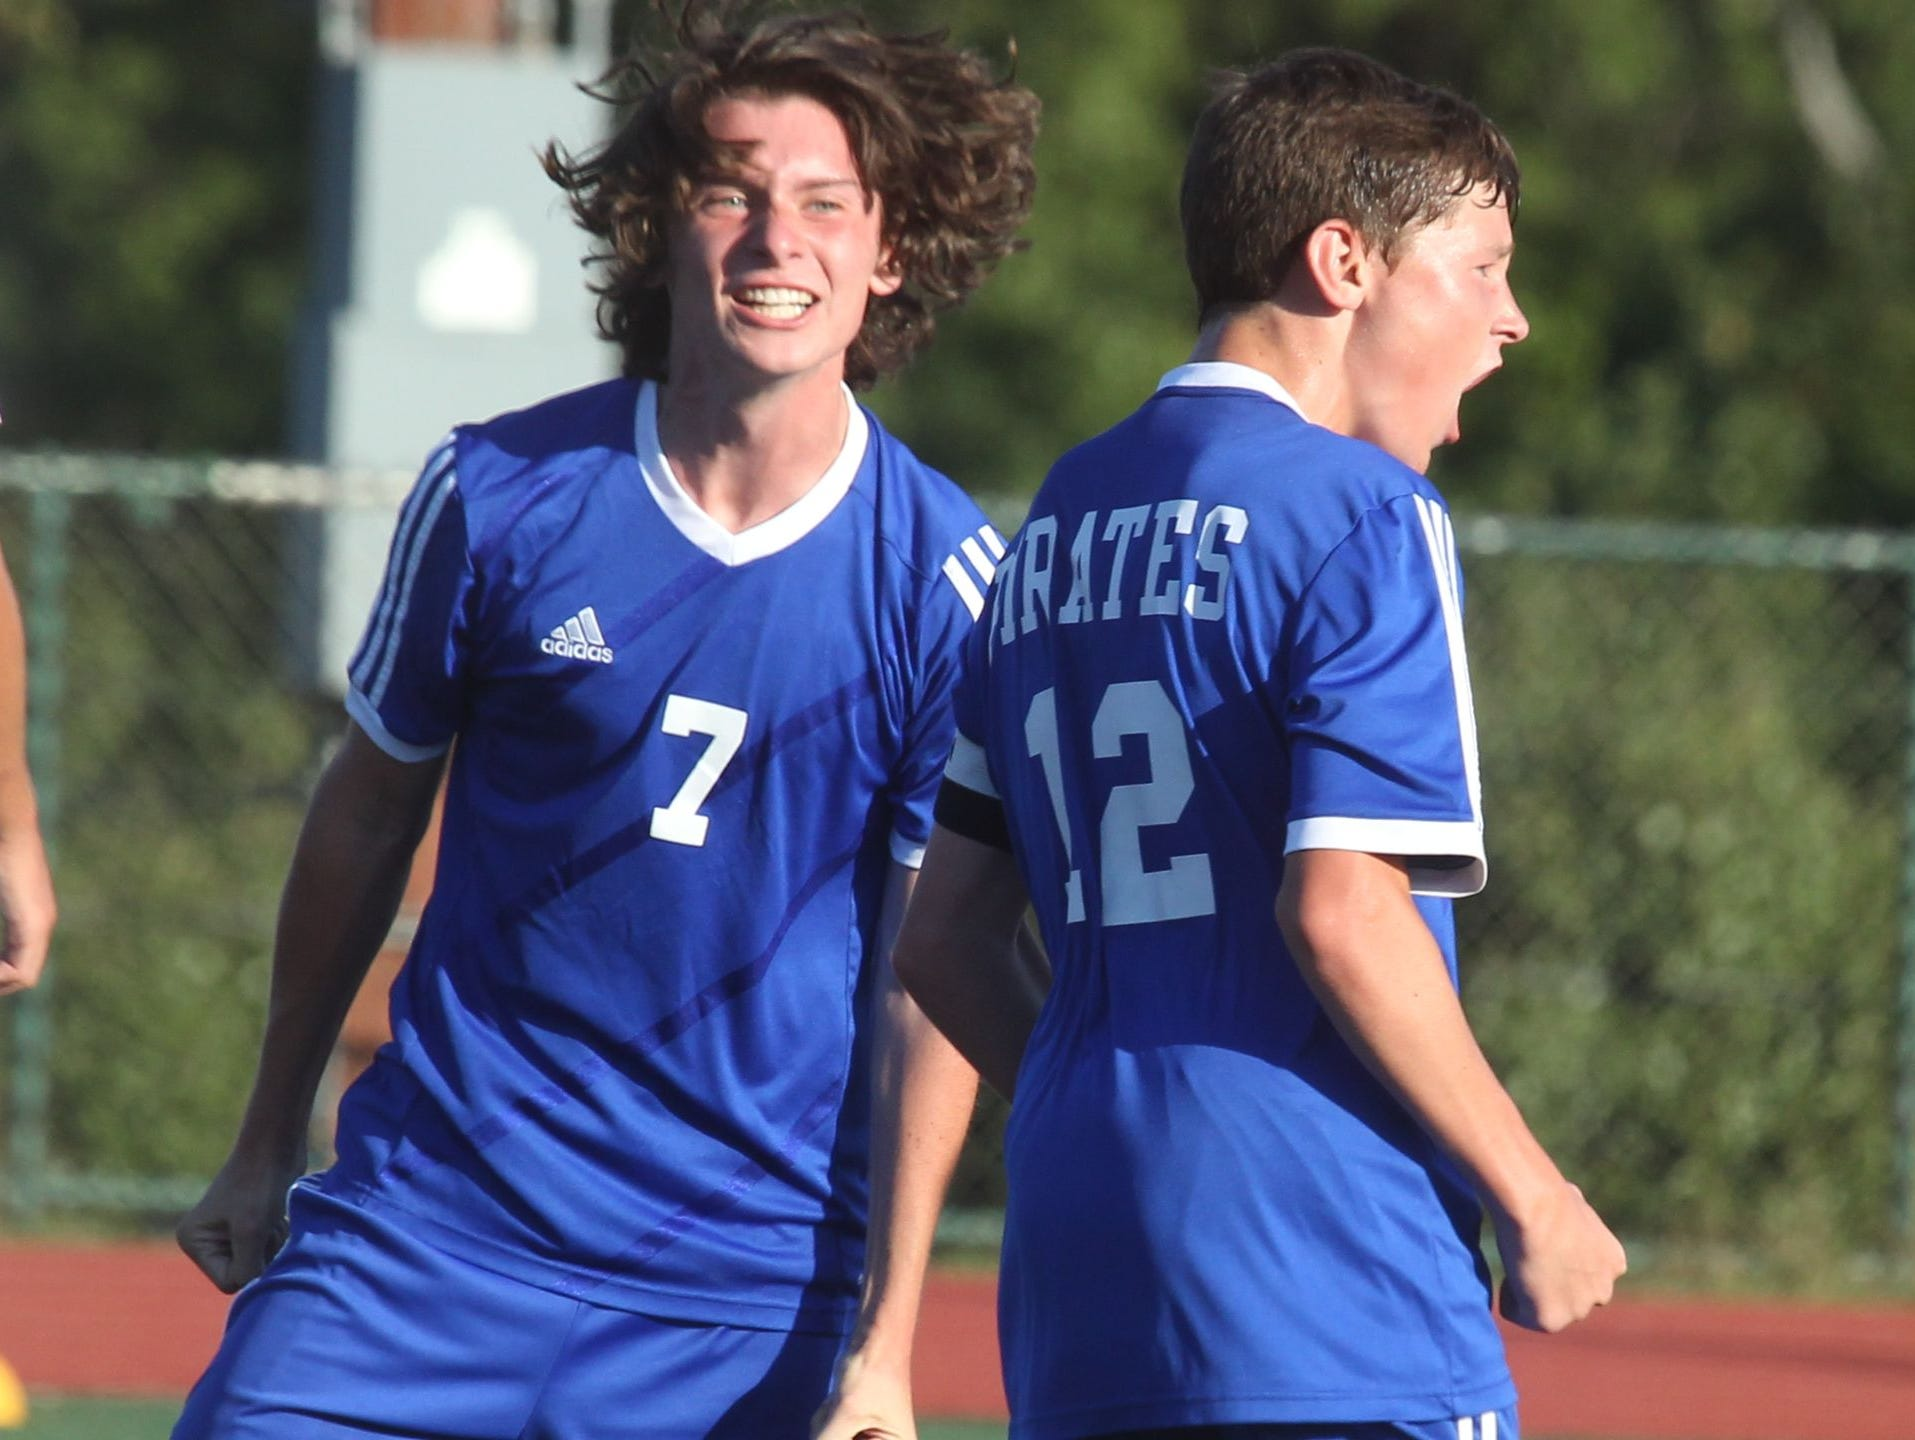 Pearl River's Craig MacDonald, left, and Kevin Doorley celebrate Kurzhals' goal during a game at Tappan Zee Sept. 24, 2015. Pearl River won1-0.